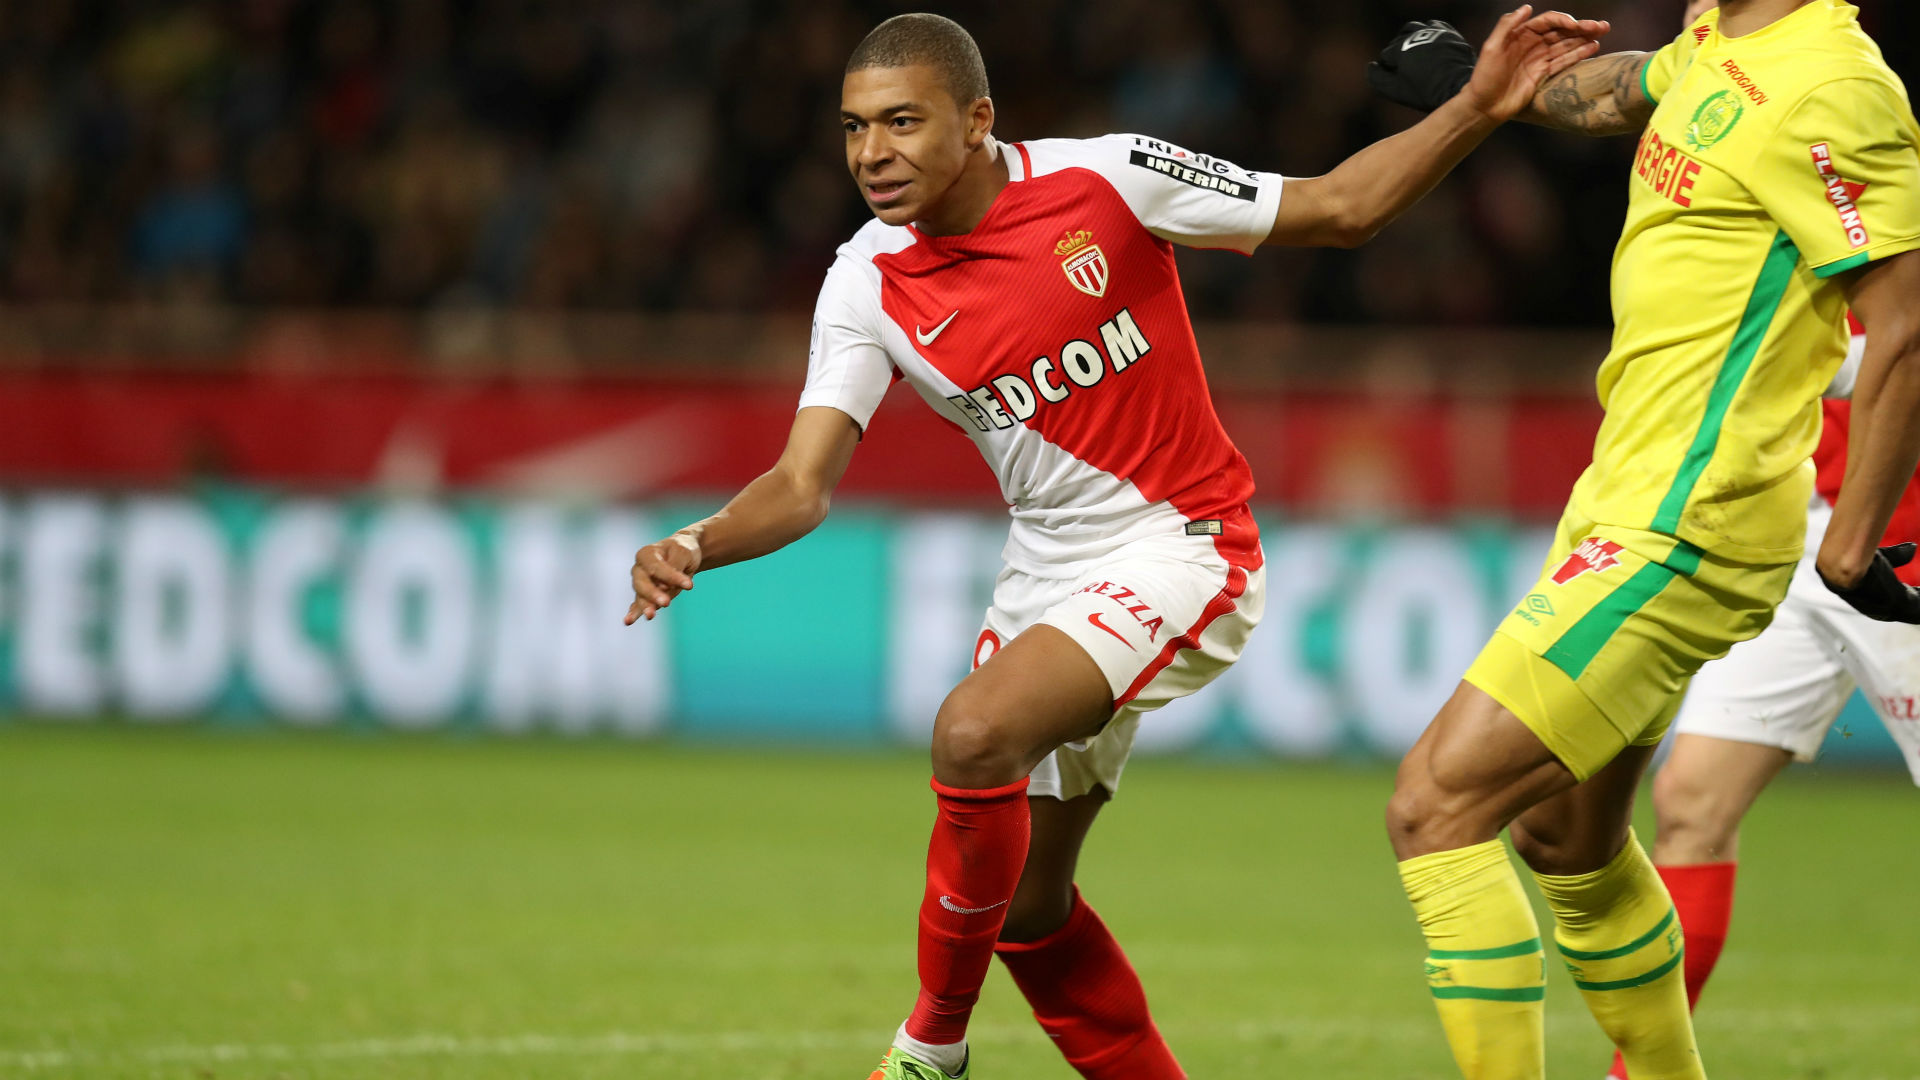 Nice Wallpapers With Quotes For Desktop Kylian Mbappe Wallpaper